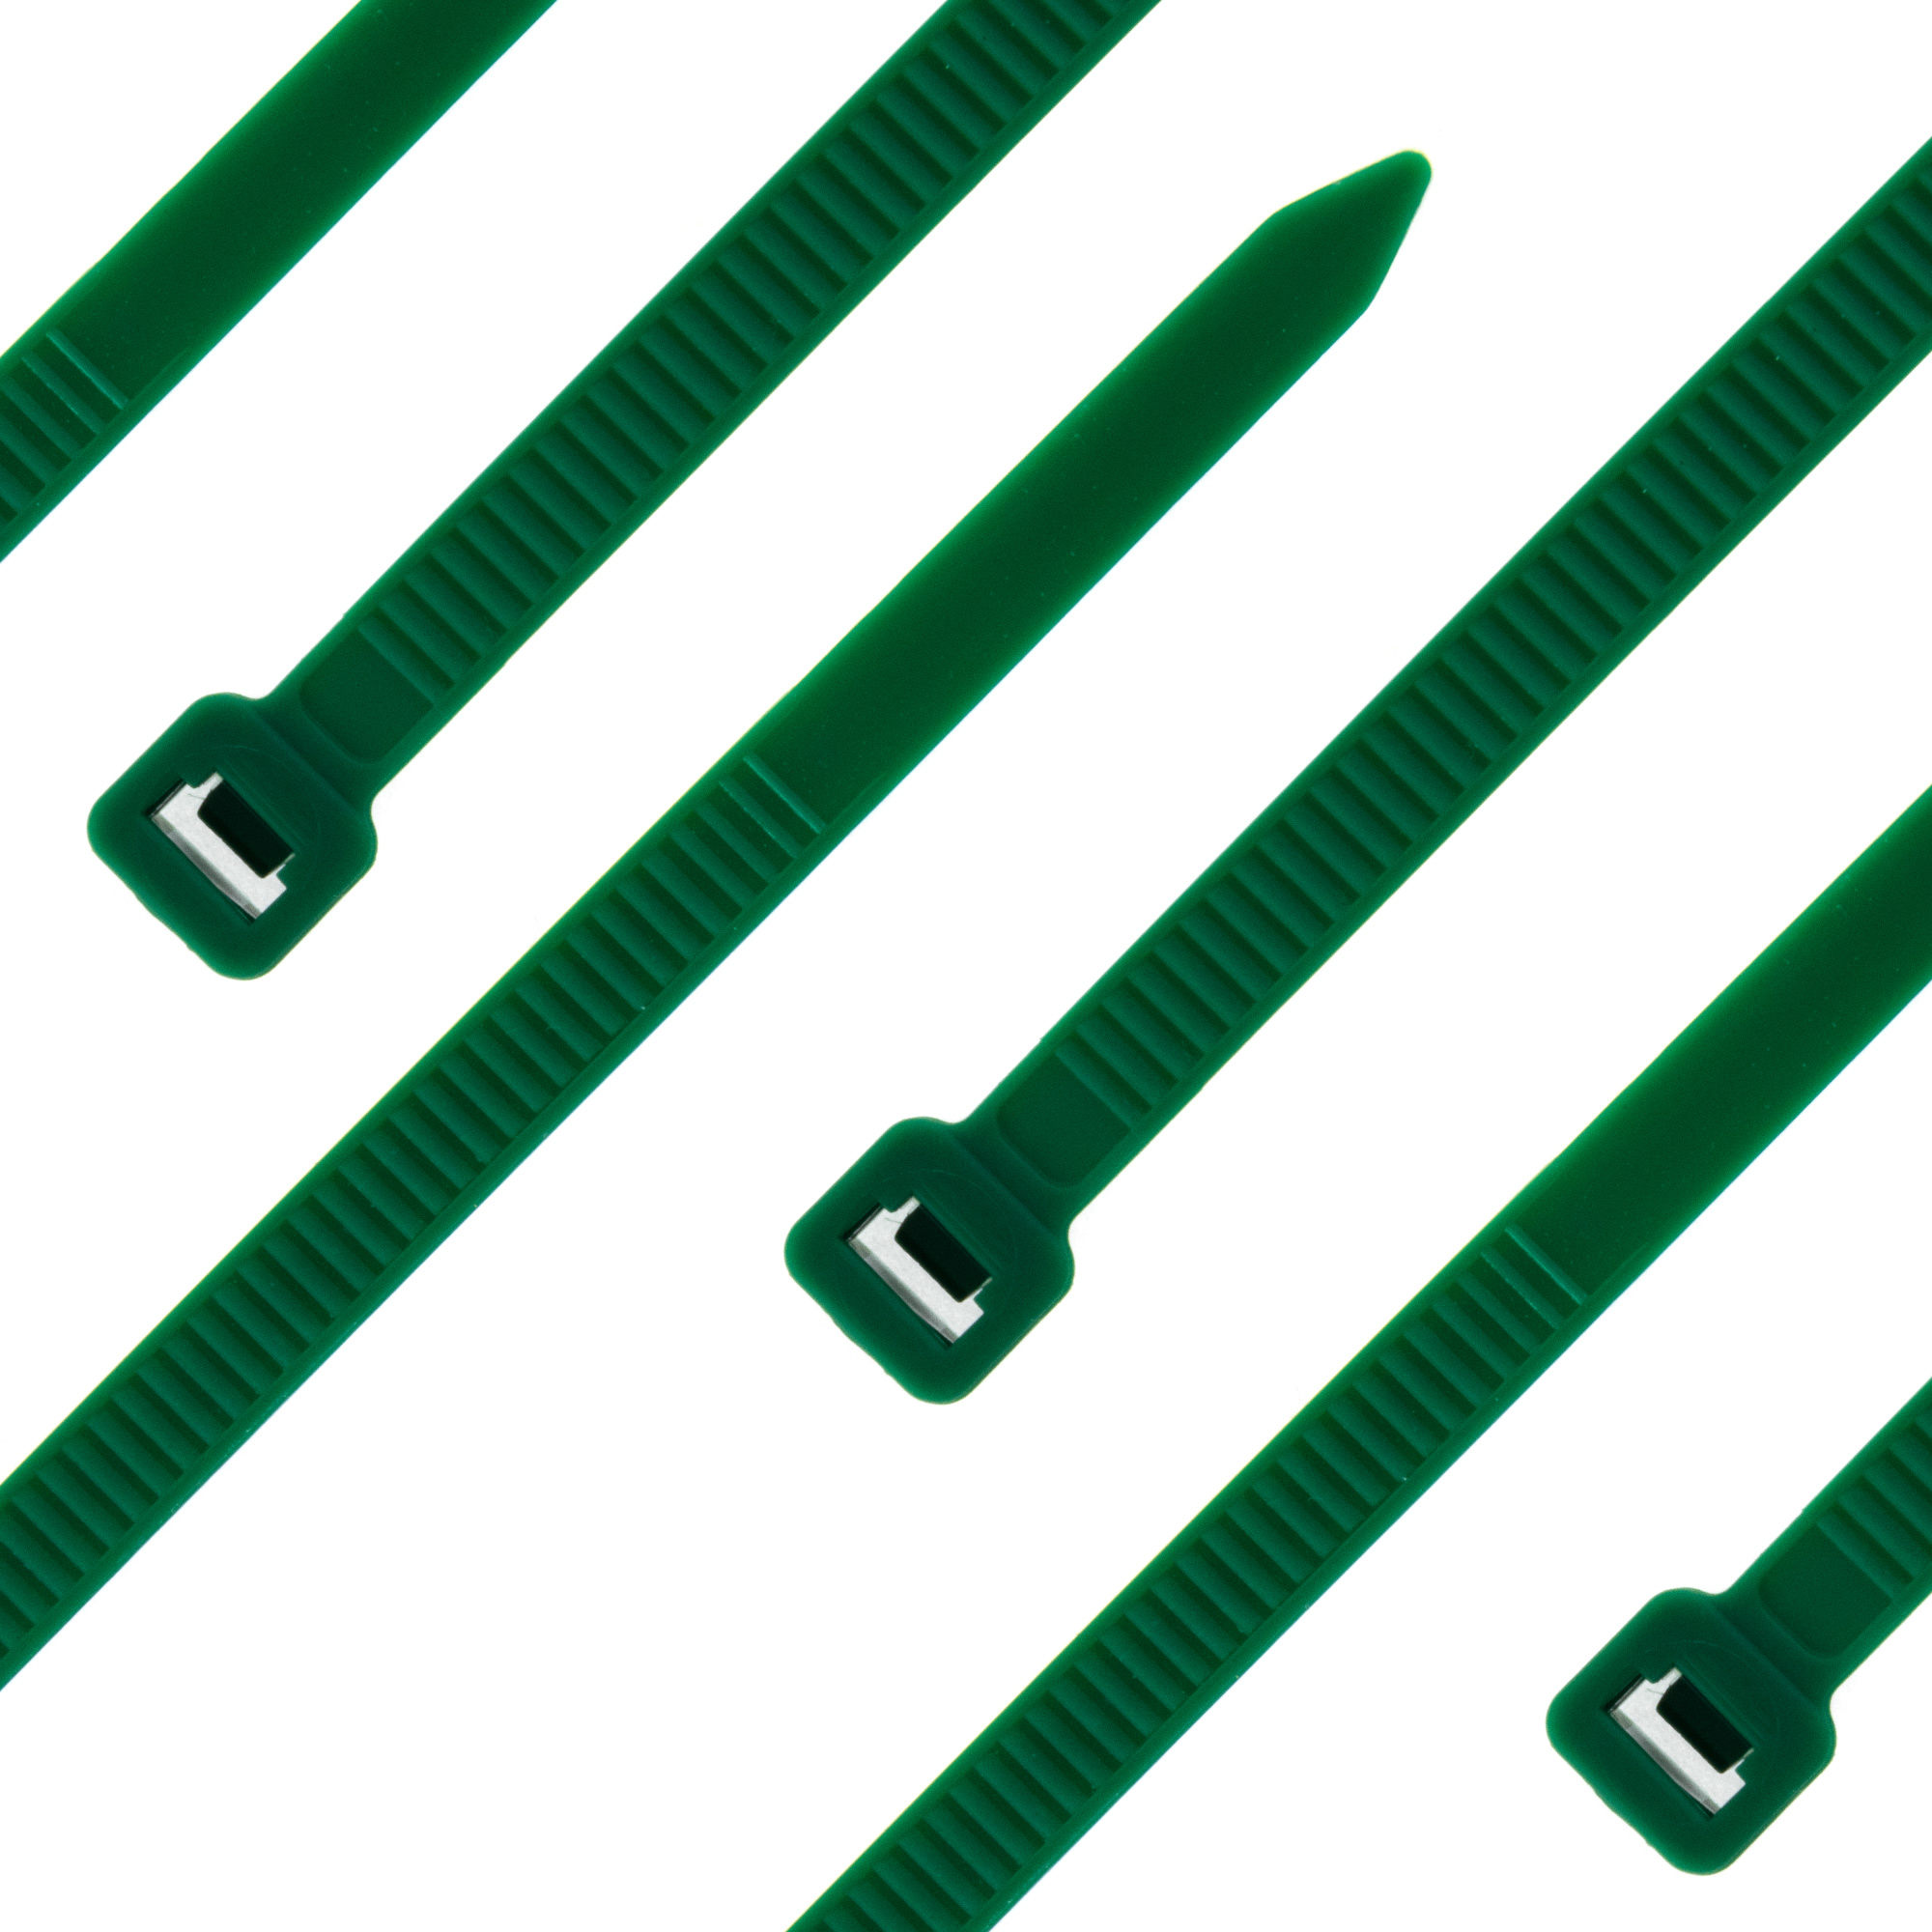 Cable tie self-locking 300 x 4,8mm, green, 100PCS